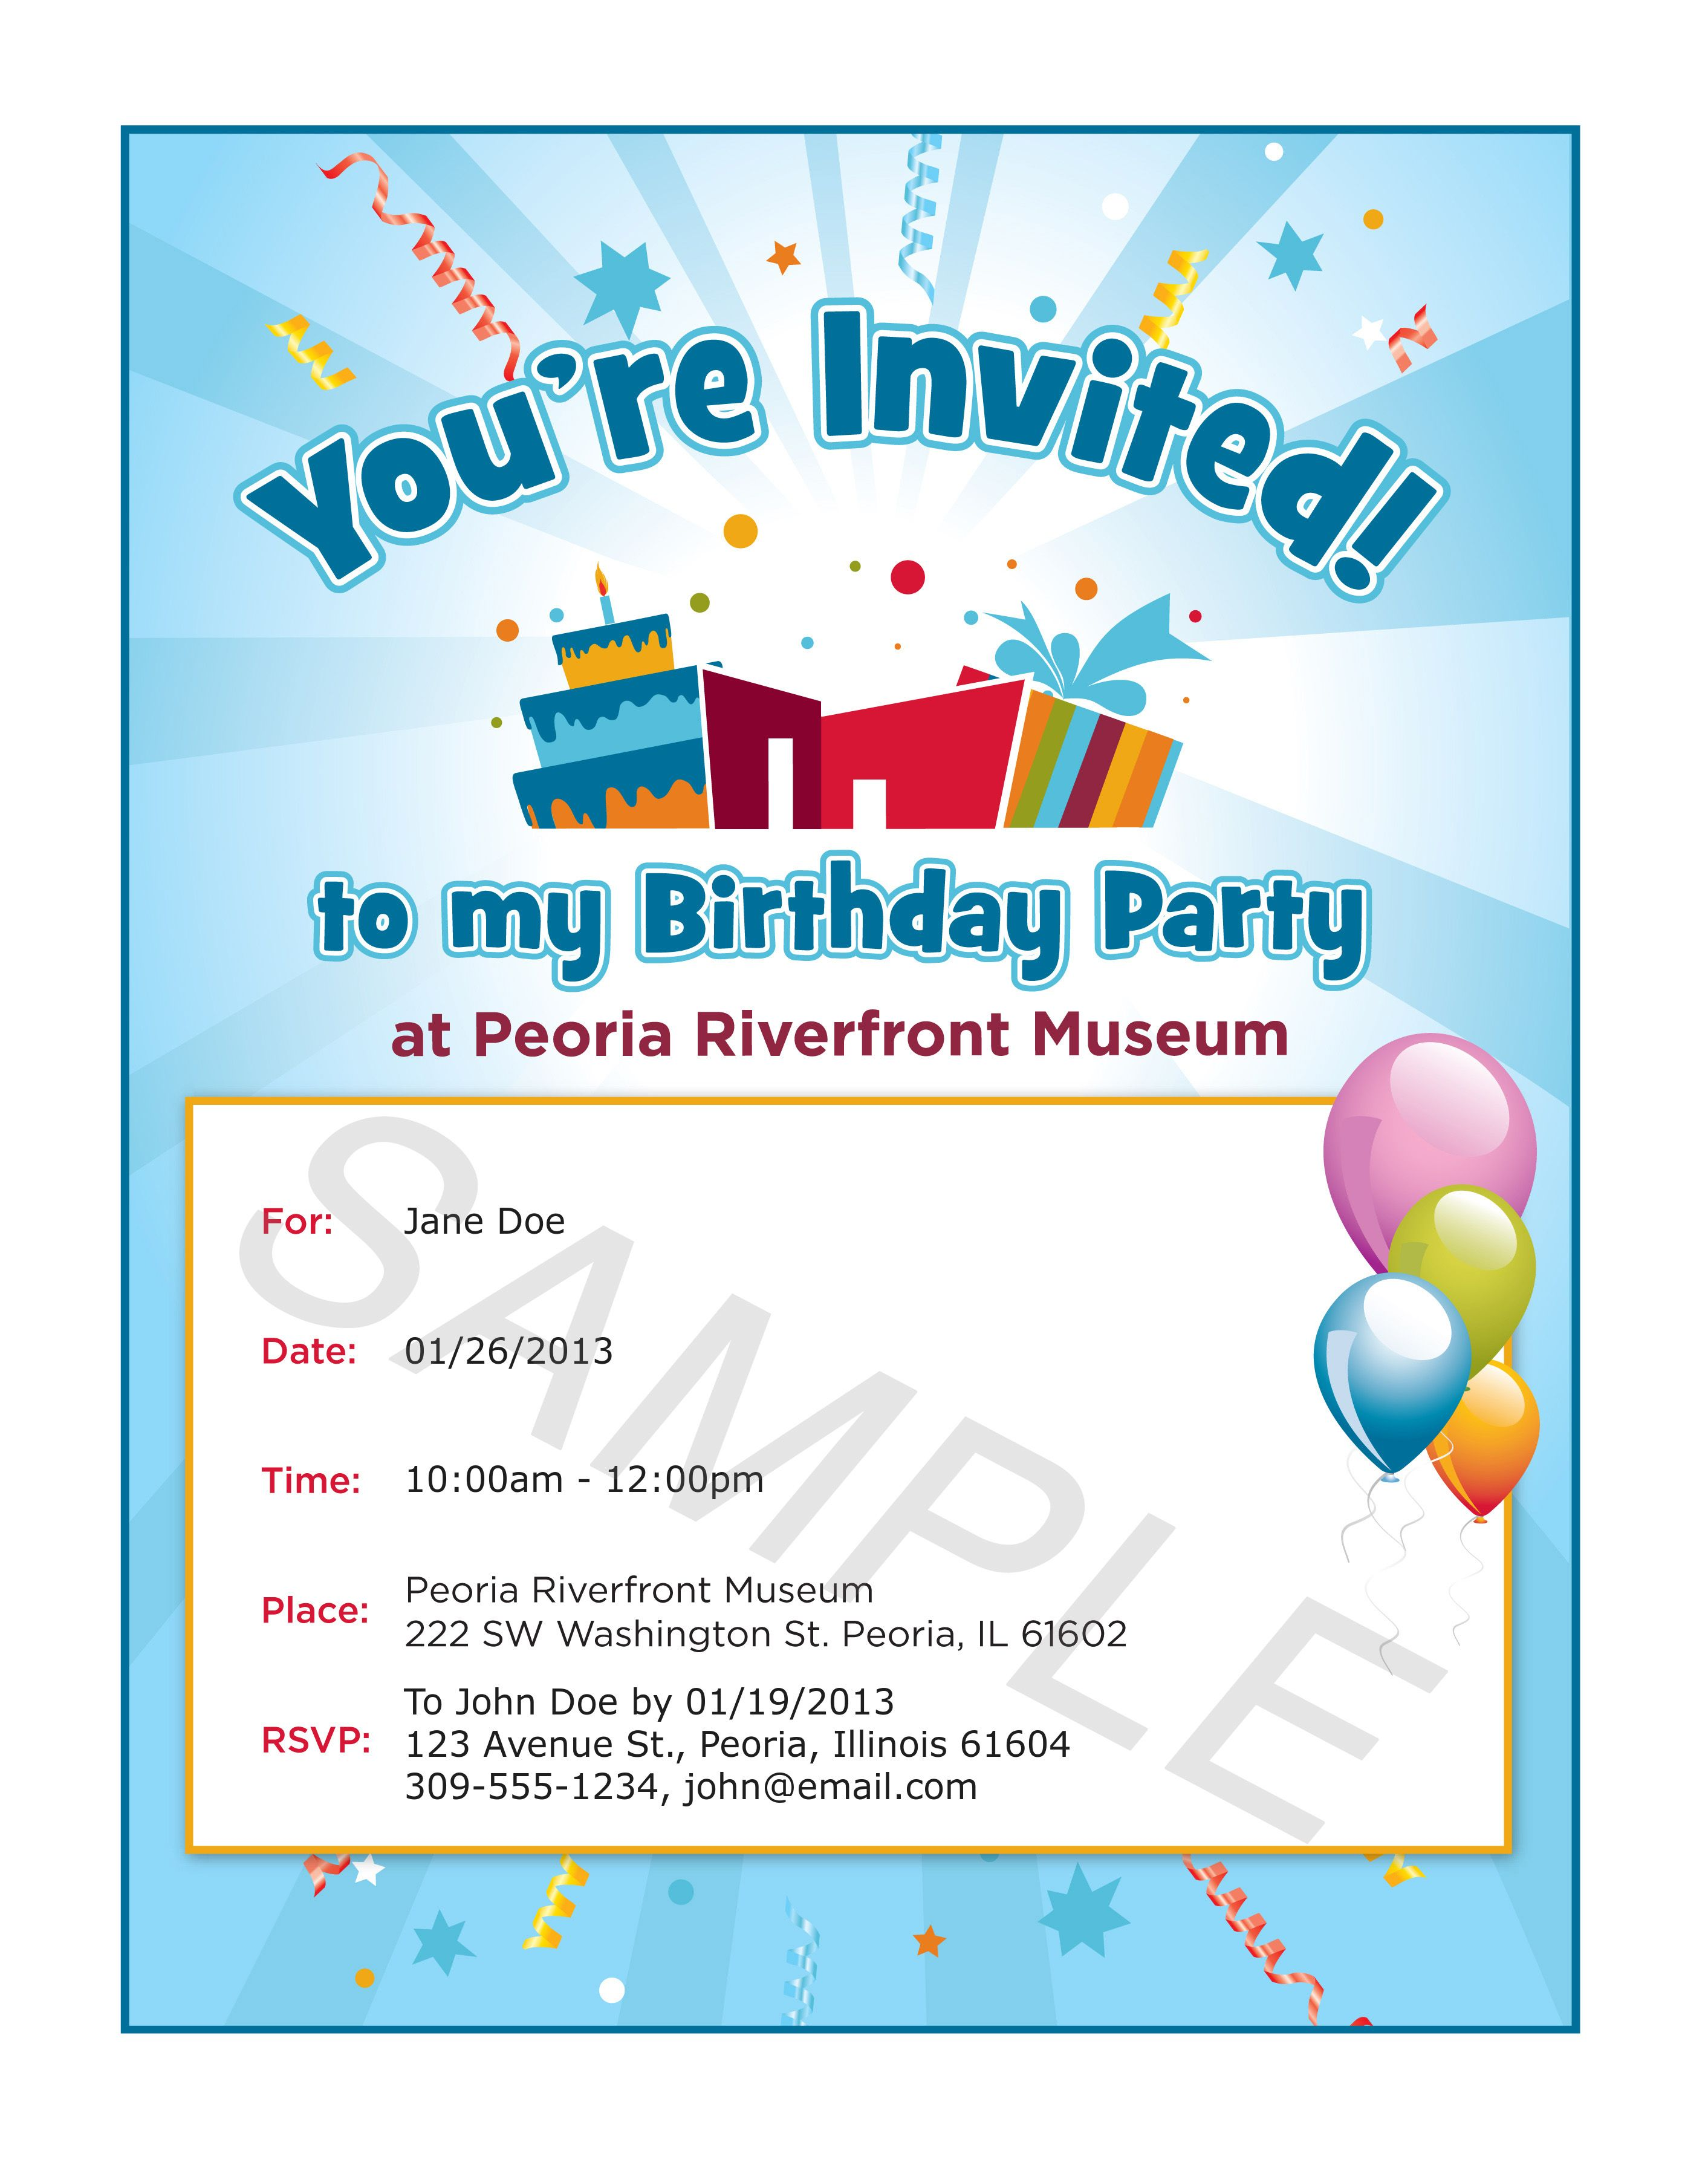 Birthday Invitation Templates Word Sample Birthday Invitation Template 40  Documents In Pdf Psd, Invitation Birthday Template Word, Birthday Party  Invitation ...  Birthday Invitation Templates Word Free